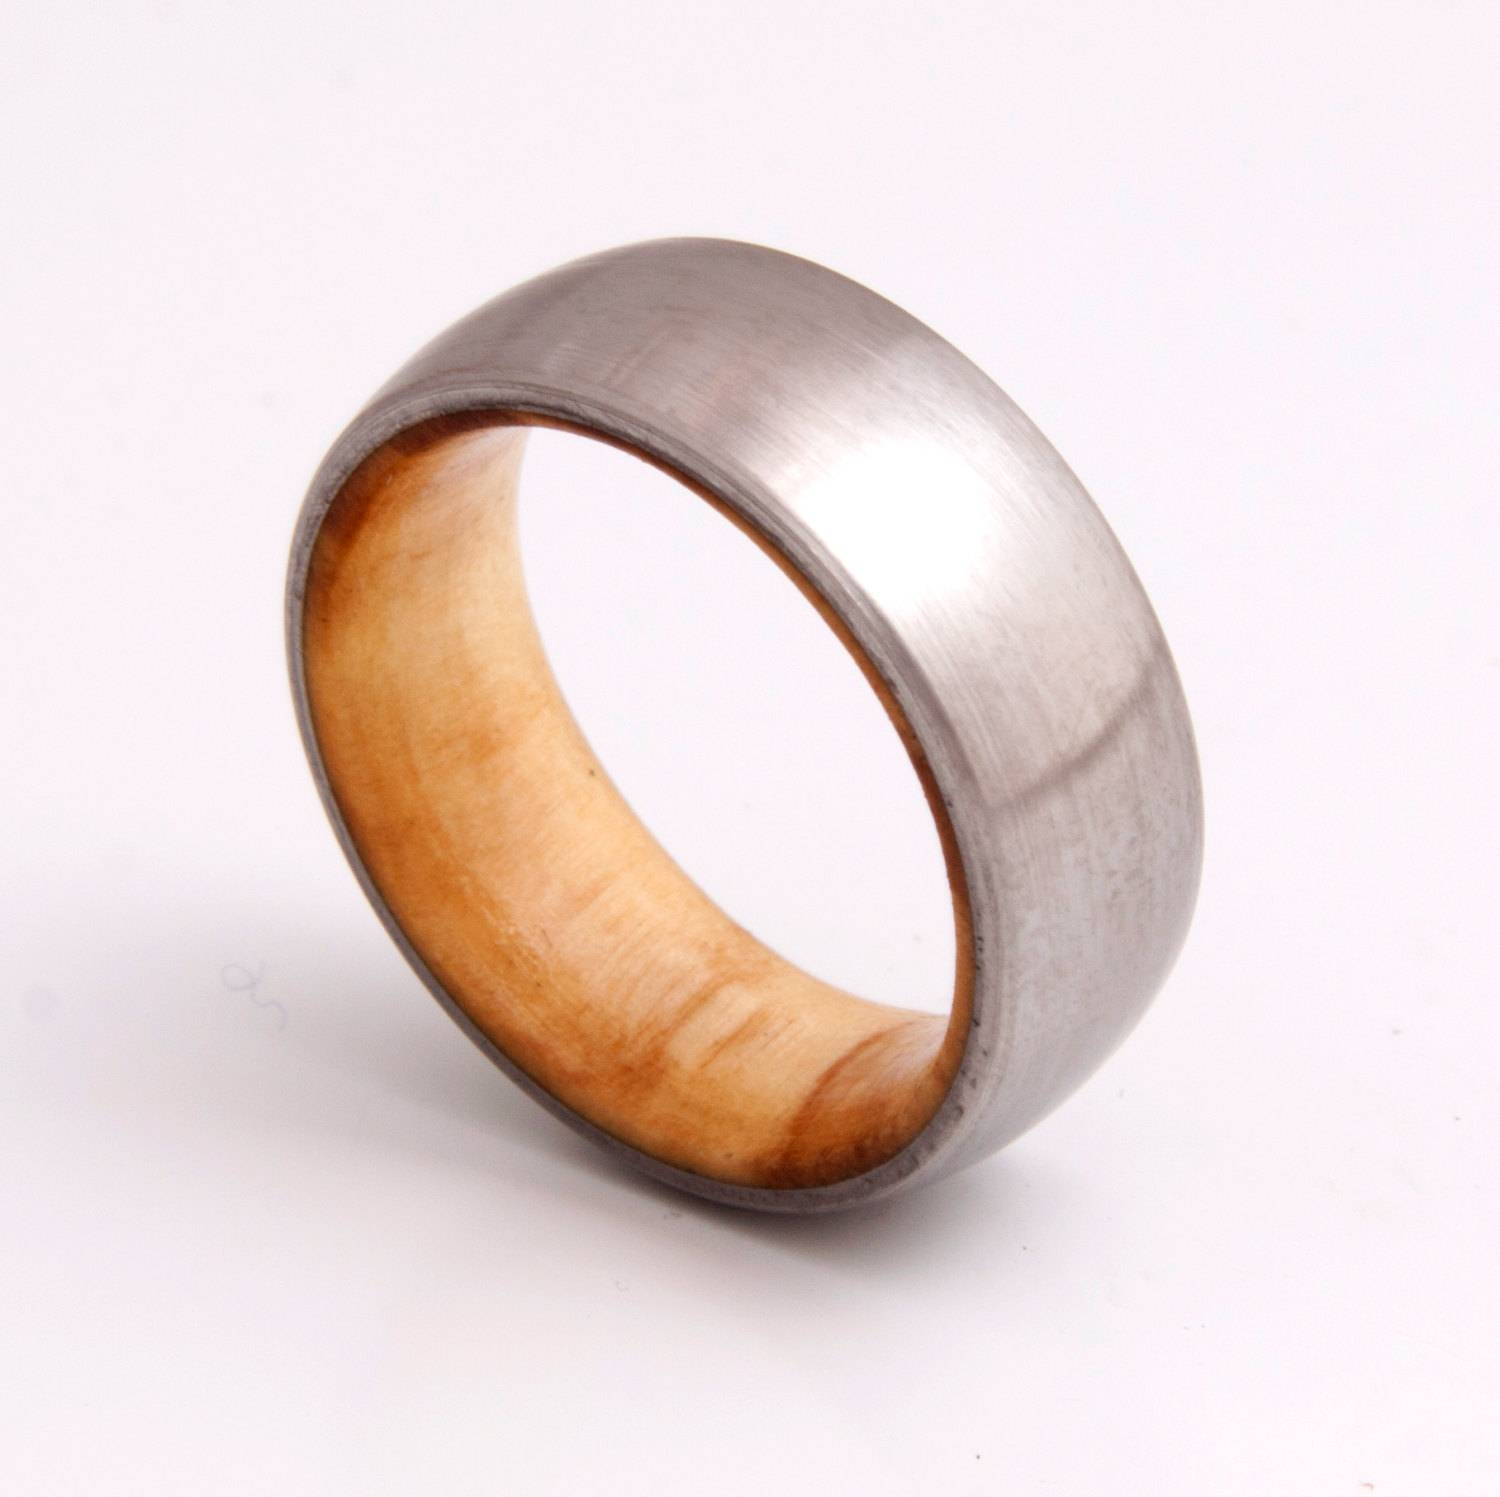 Wooden Ring / Wedding Band / Titanium Olive Wood Ring Throughout Titanium Mens Wedding Rings (View 15 of 15)